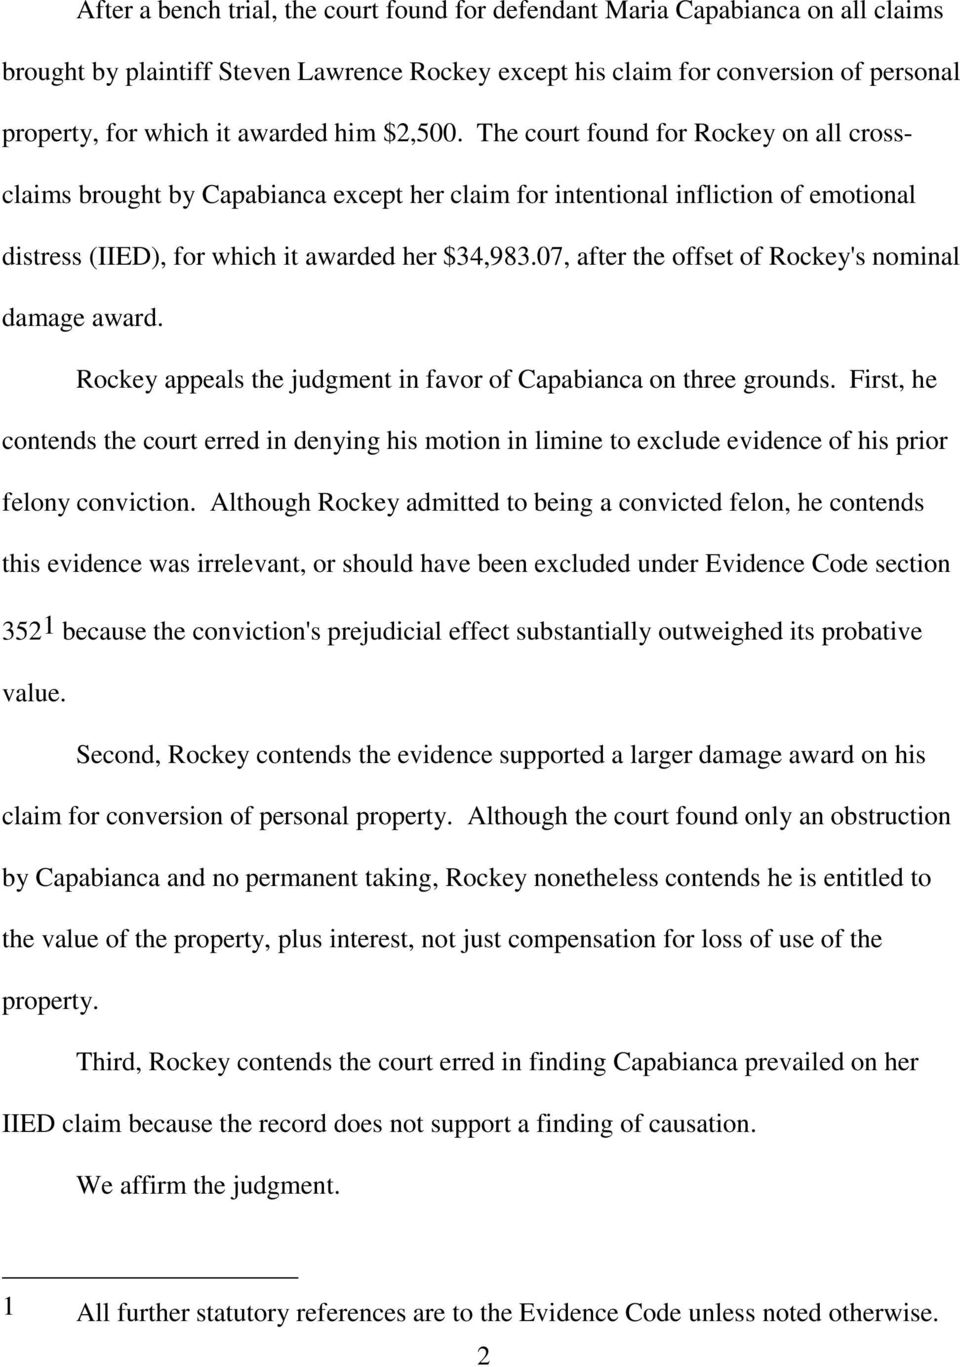 07, after the offset of Rockey's nominal damage award. Rockey appeals the judgment in favor of Capabianca on three grounds.